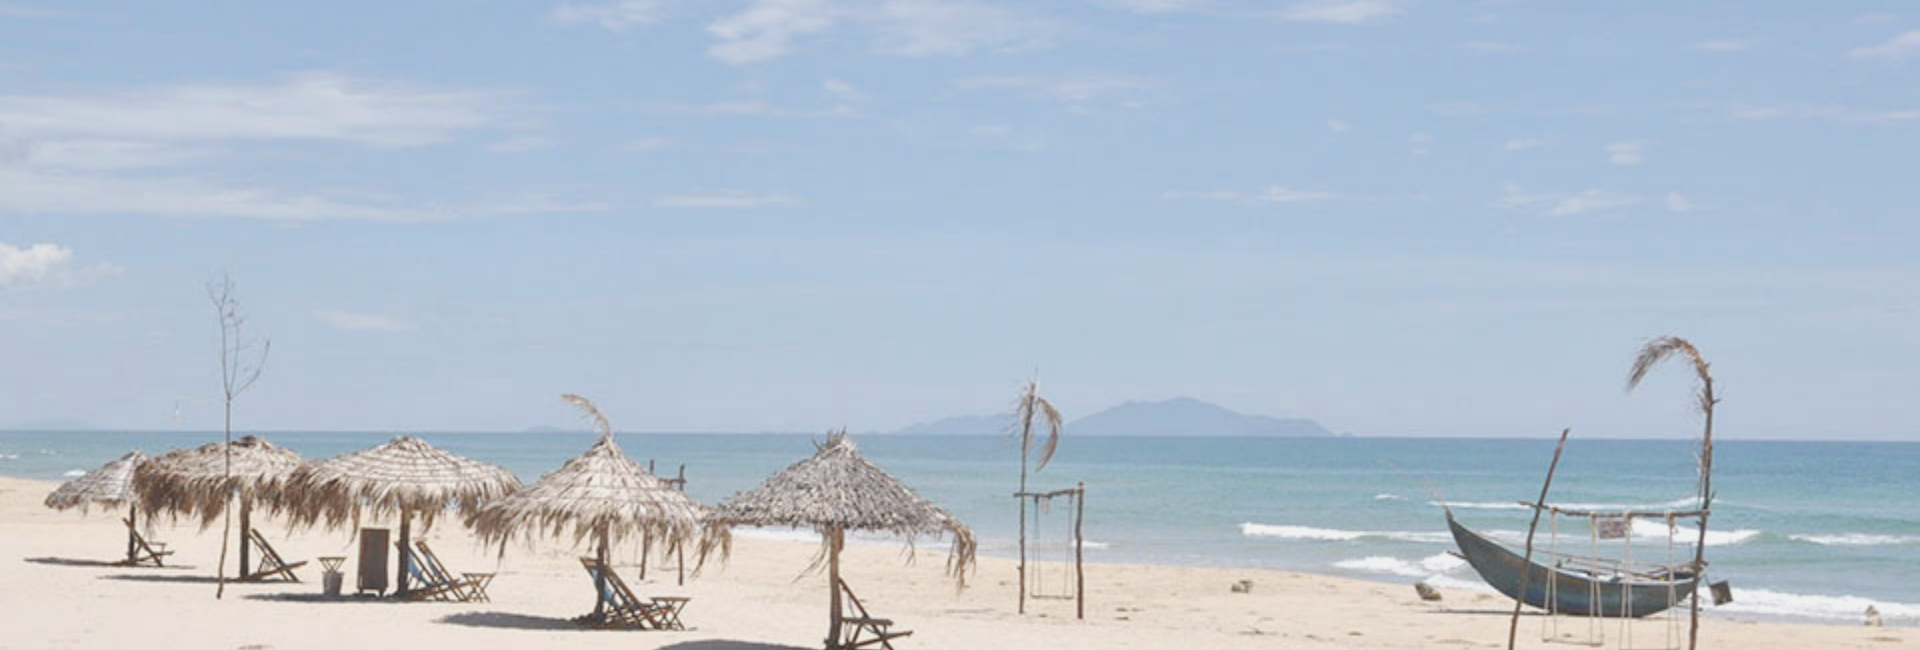 Da Nang Luxury Beach Vacation 4 Days